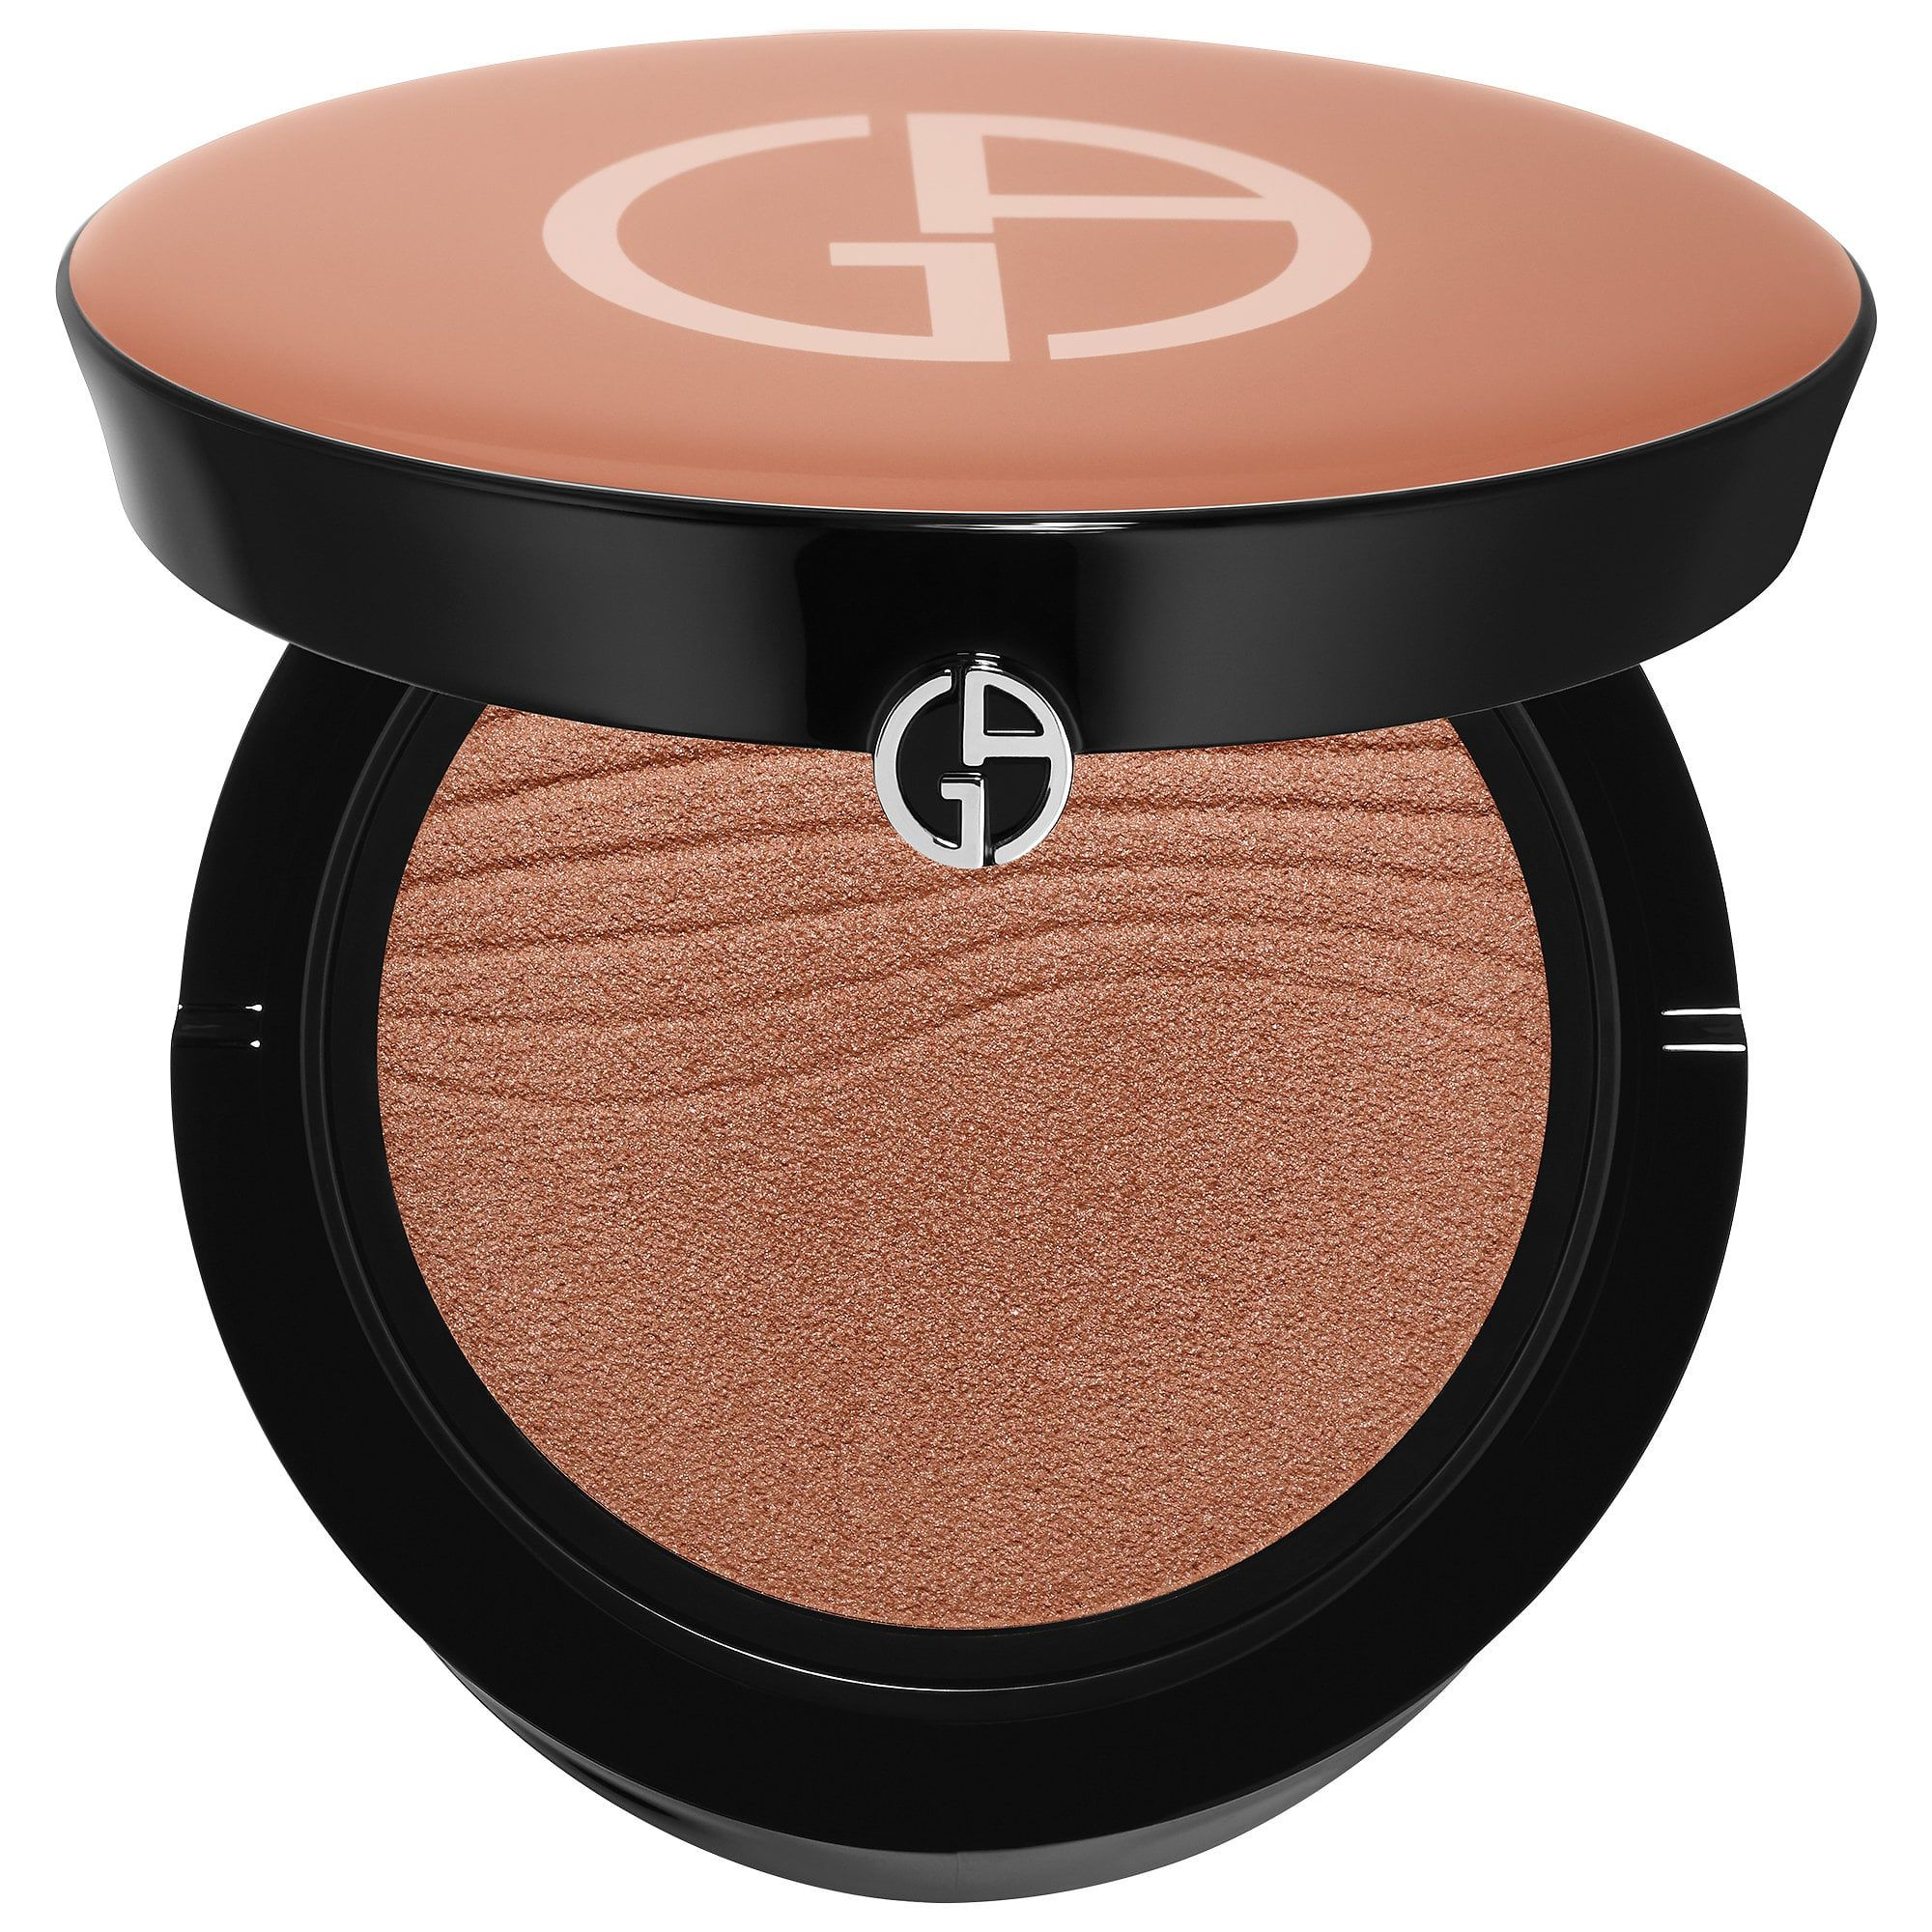 For Selfies Neo Nude Fusion Powder Giorgio Armani Beauty sephora.com $58.00 SHOP NOW This powder creates a flattering veil over your imperfections while blending seamlessly into your natural skin texture. It reflects light without that dreaded flashback, so it's ideal for photos.